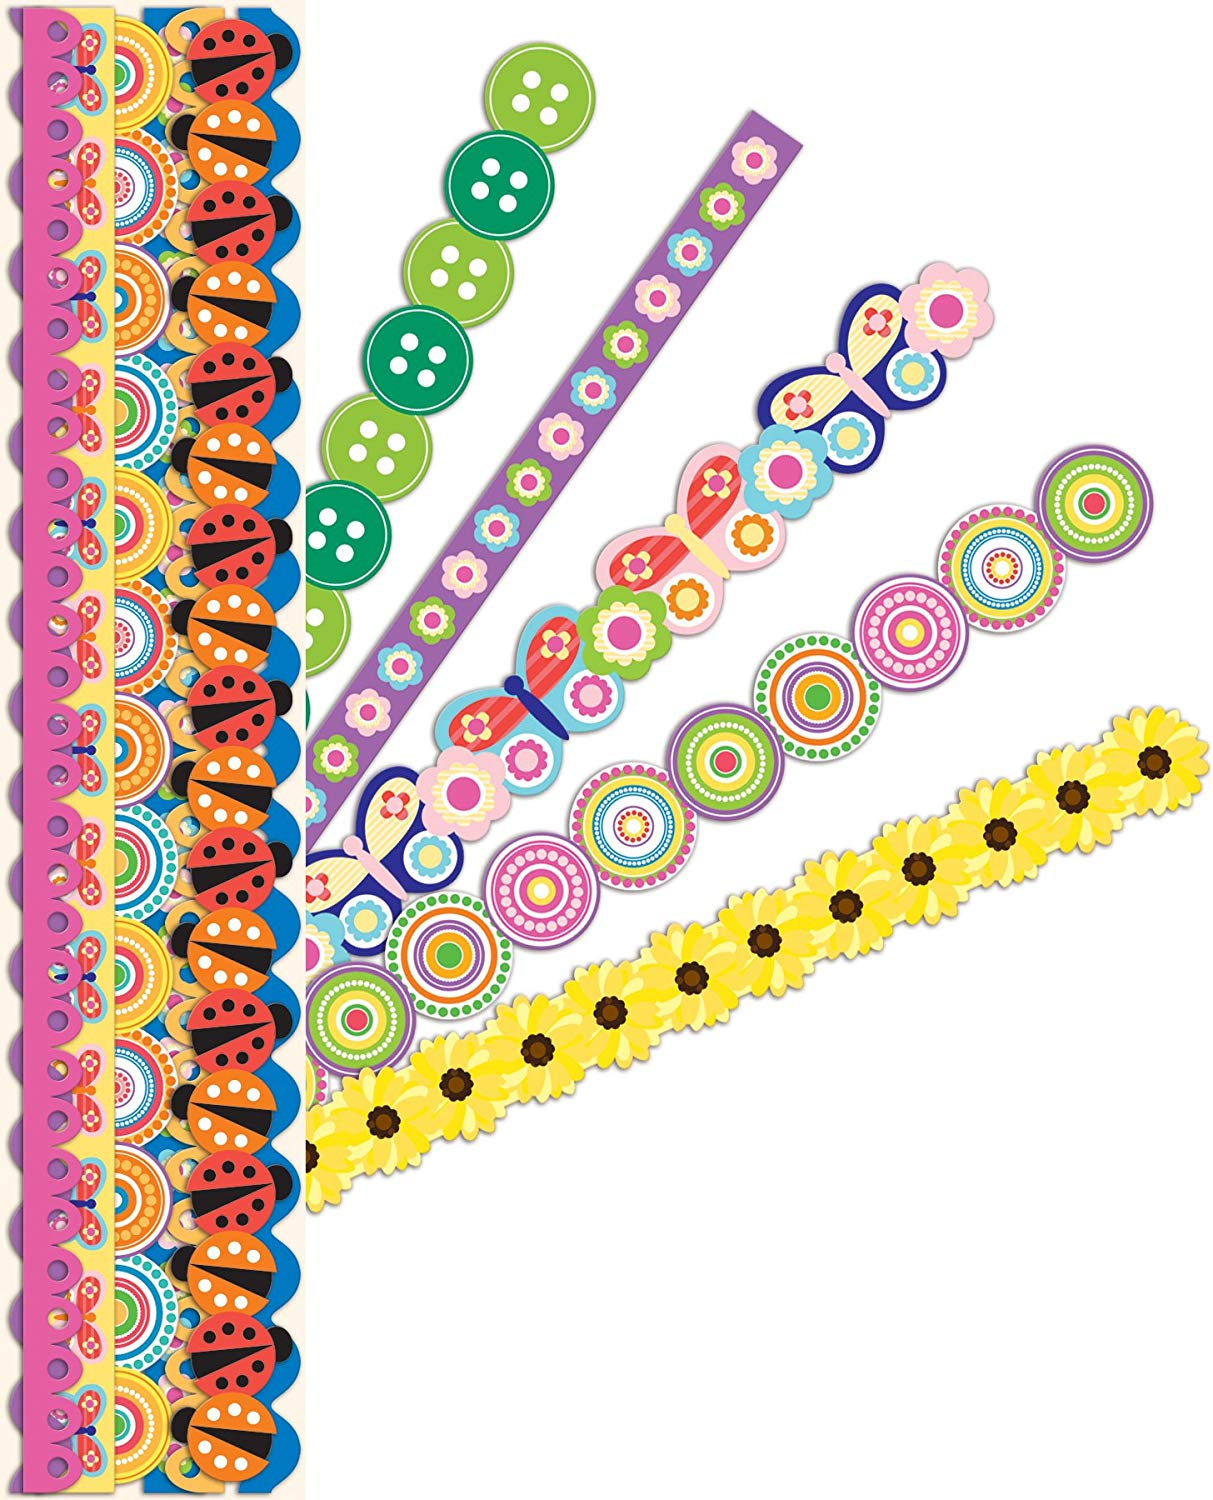 American Craft K&Company Summer Bright Adhesive Borders